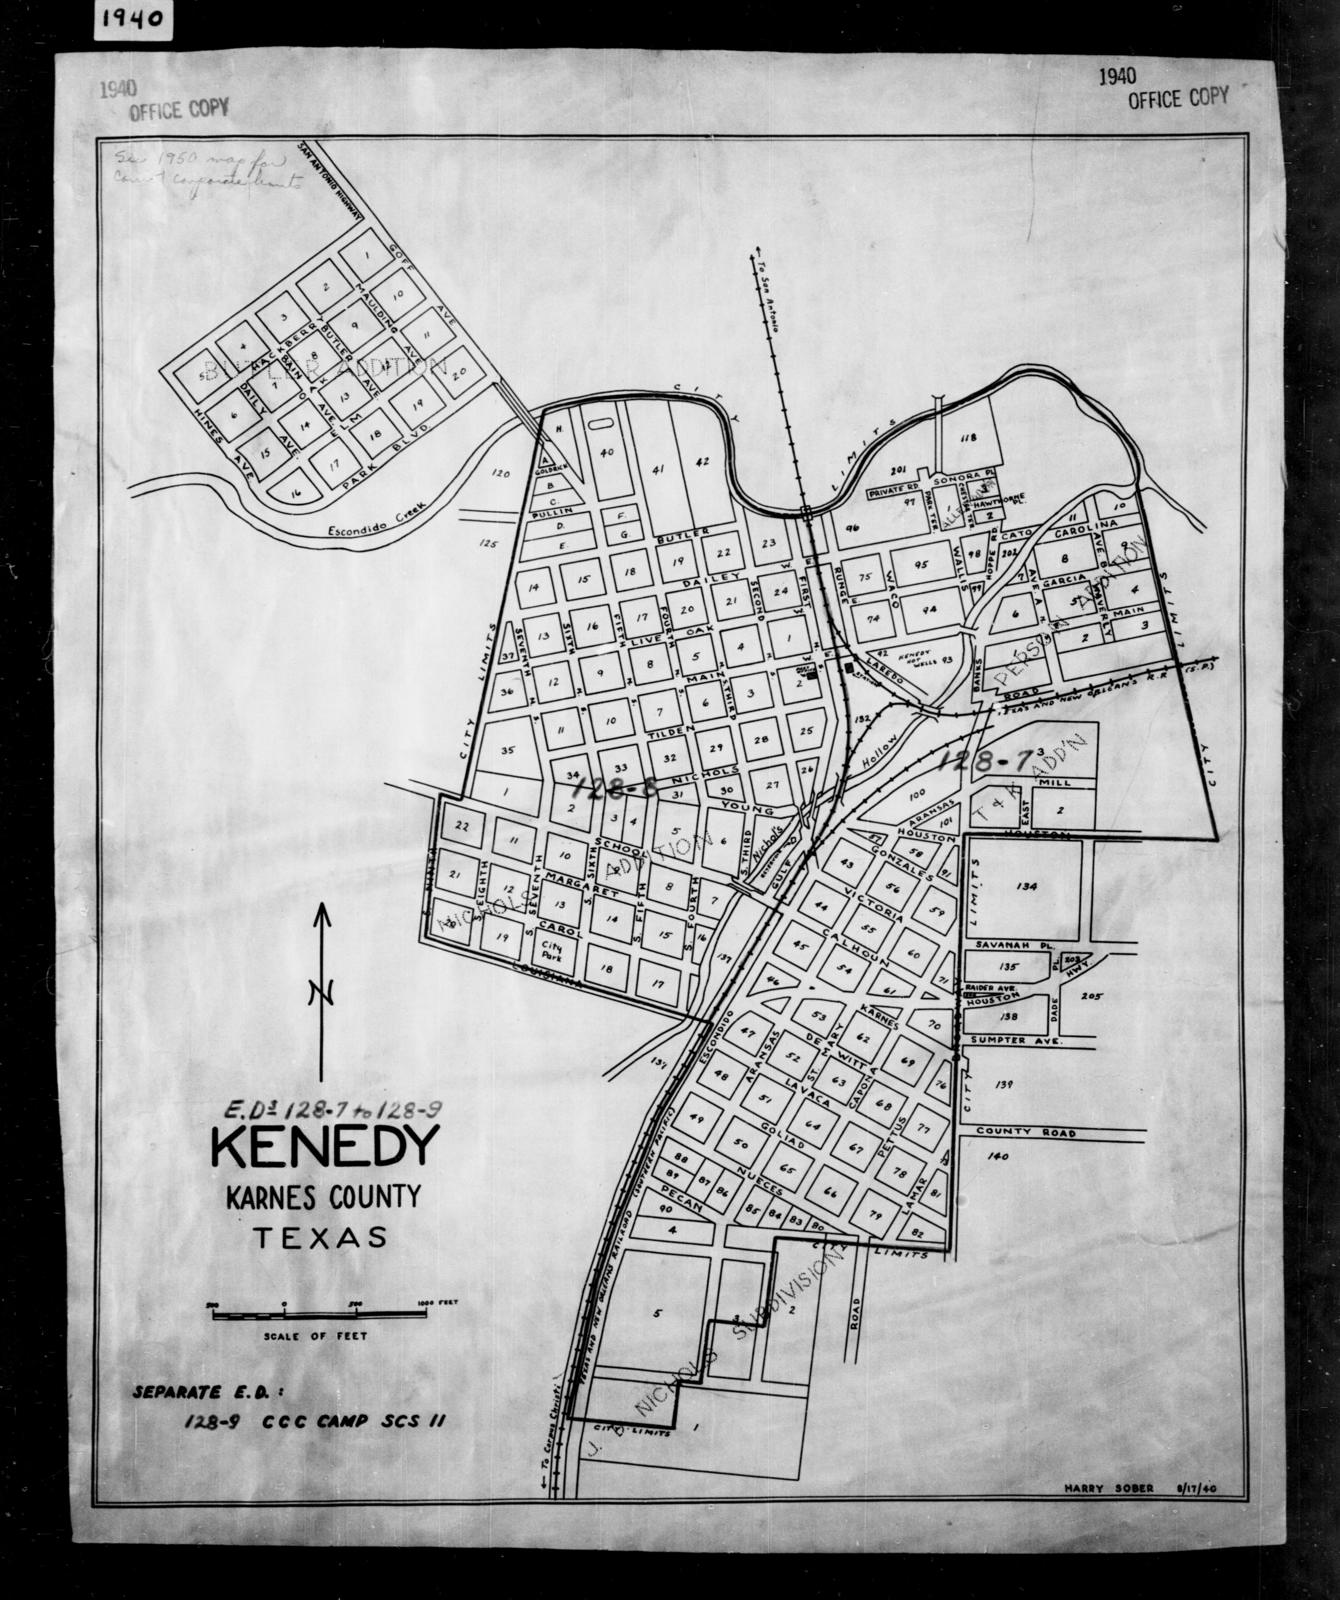 1940 Census Enumeration District Maps - Texas - Karnes County ... on rhome texas county map, tyler county, waller county texas map, wharton county texas map, webb county texas map, kenedy county texas map, waller county, chicago texas map, scurry county tx map, nacogdoches county texas map, madison county, jackson county, atascosa county, falls city, harris county, orange county texas map, williamson county, wilson county texas map, live oak county texas map, karnes detention center, montgomery county, dewitt county texas map, wilson county, zavala county, childress county texas abstract map, travis county, texas natural resources map, lee county, orange county, wharton county, milam county texas map, walker county texas map, guadalupe county, lavaca county texas map, newton county, sherman county texas map, karnes city,